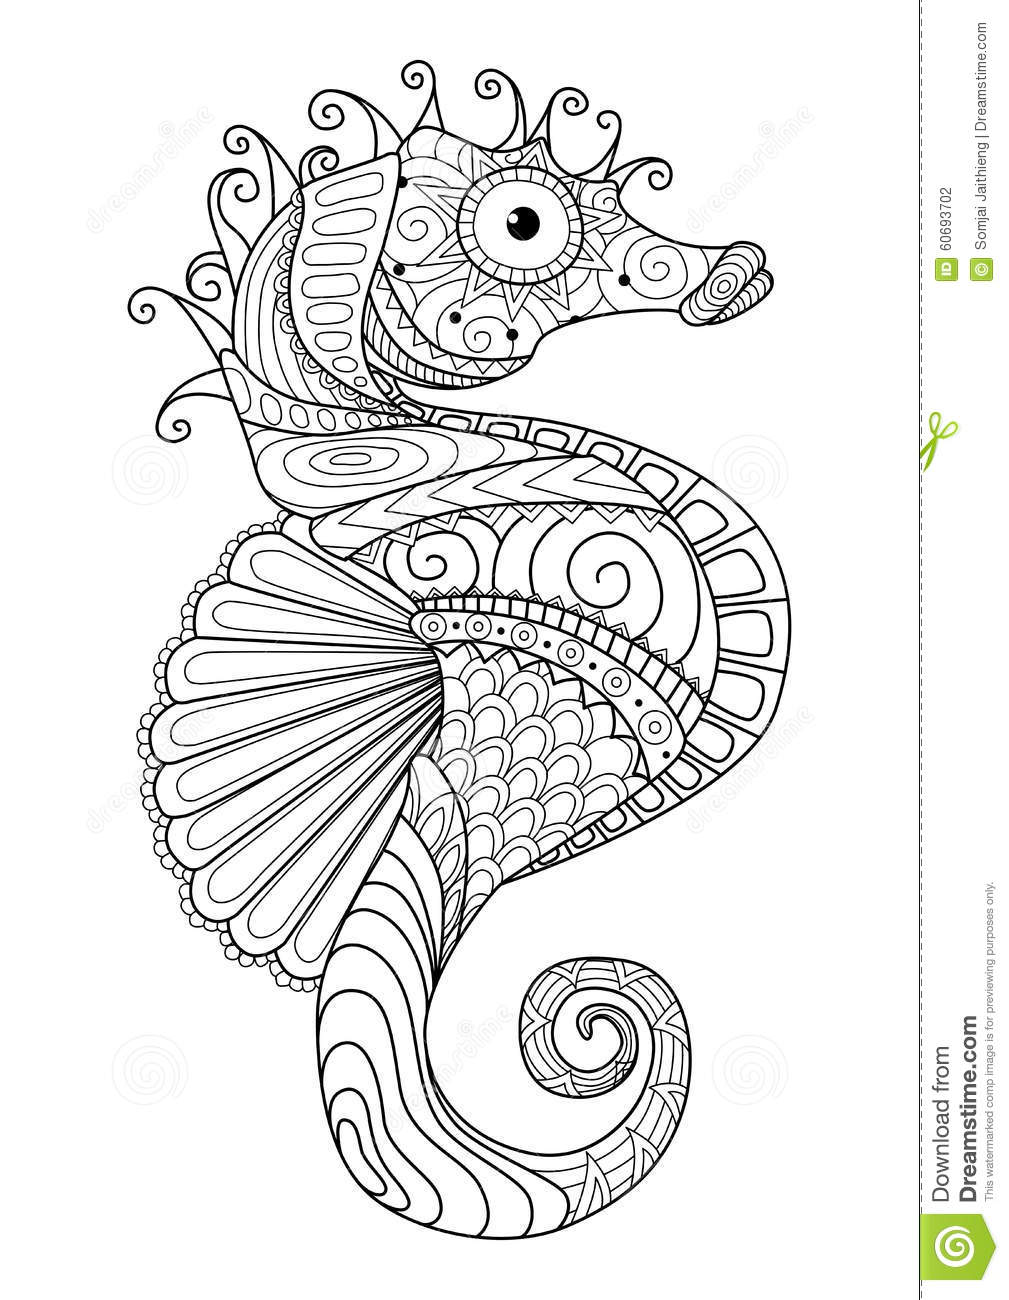 hand-drawn-sea-horse-zentangle-style-coloring-page-t-shirt-design-effect-logo-tattoo-60693702 Horse Coloring Page